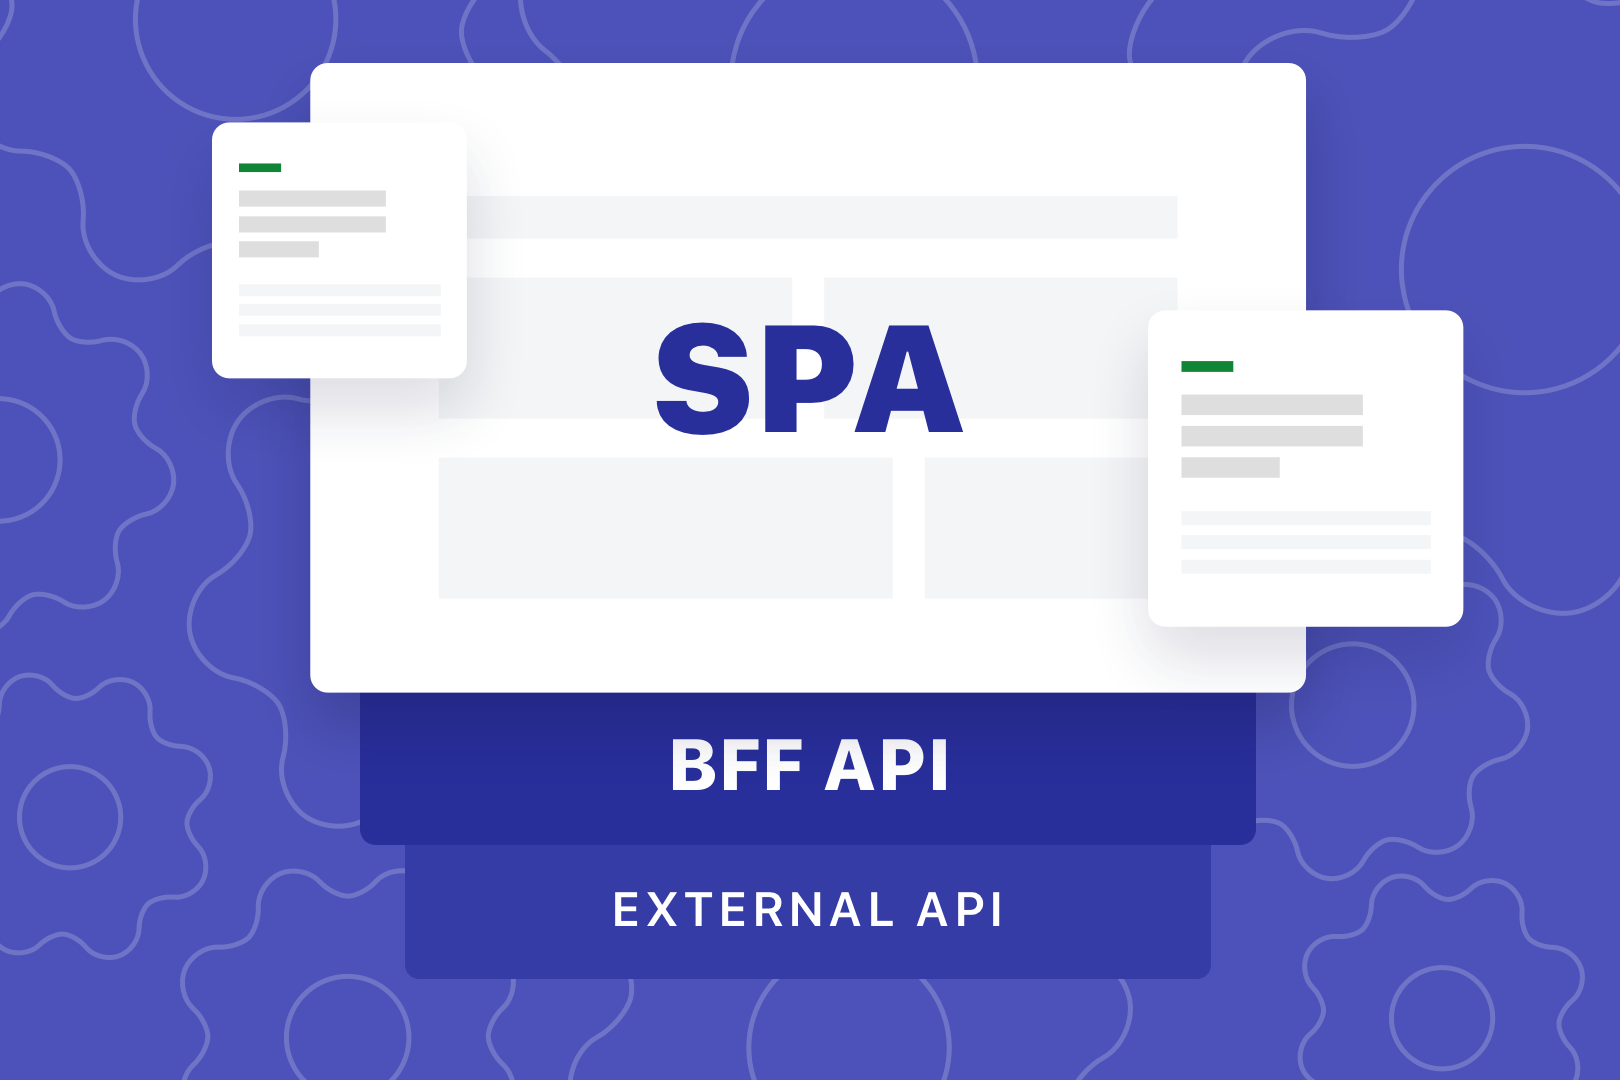 Backend for Frontend: What we learned from developing a tailored API for multiple SPAs